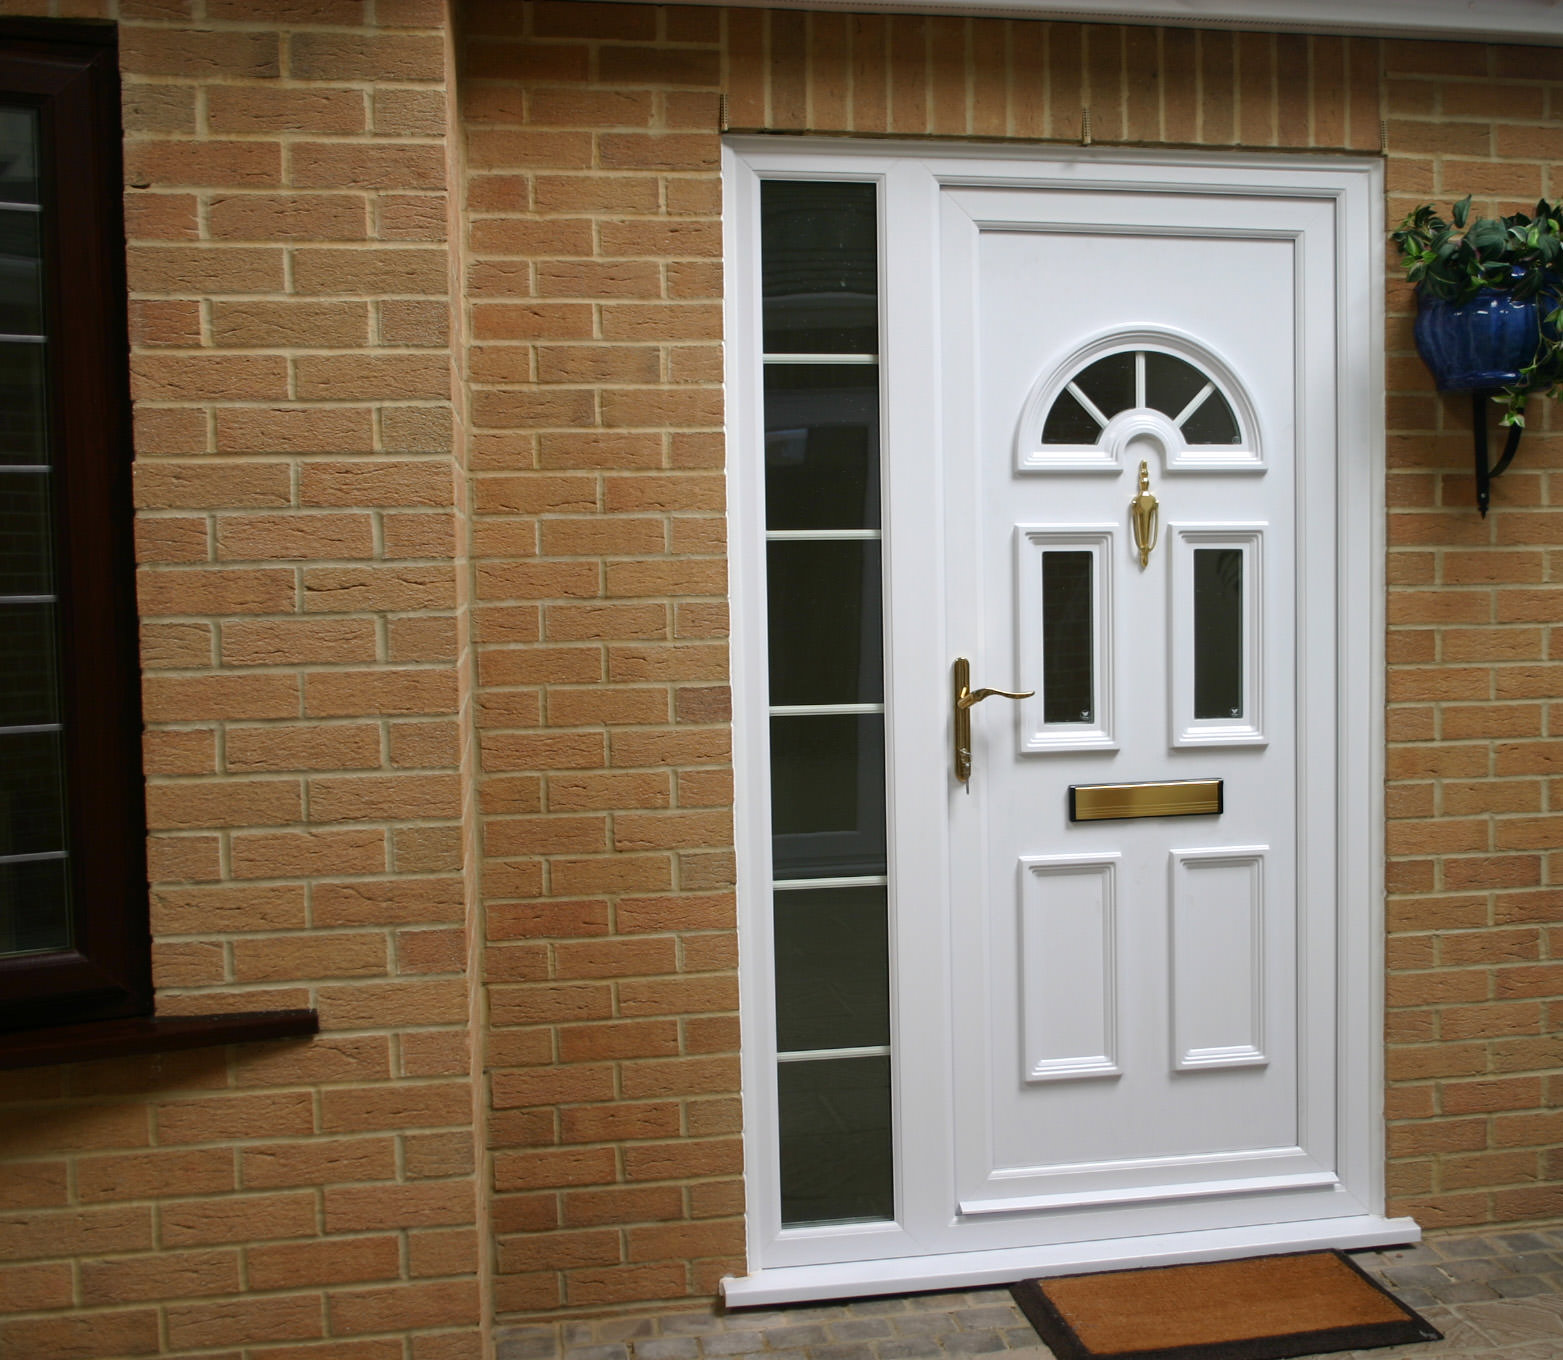 Upvc doors harrogate double glazed doors front door - Upvc double front exterior doors ...